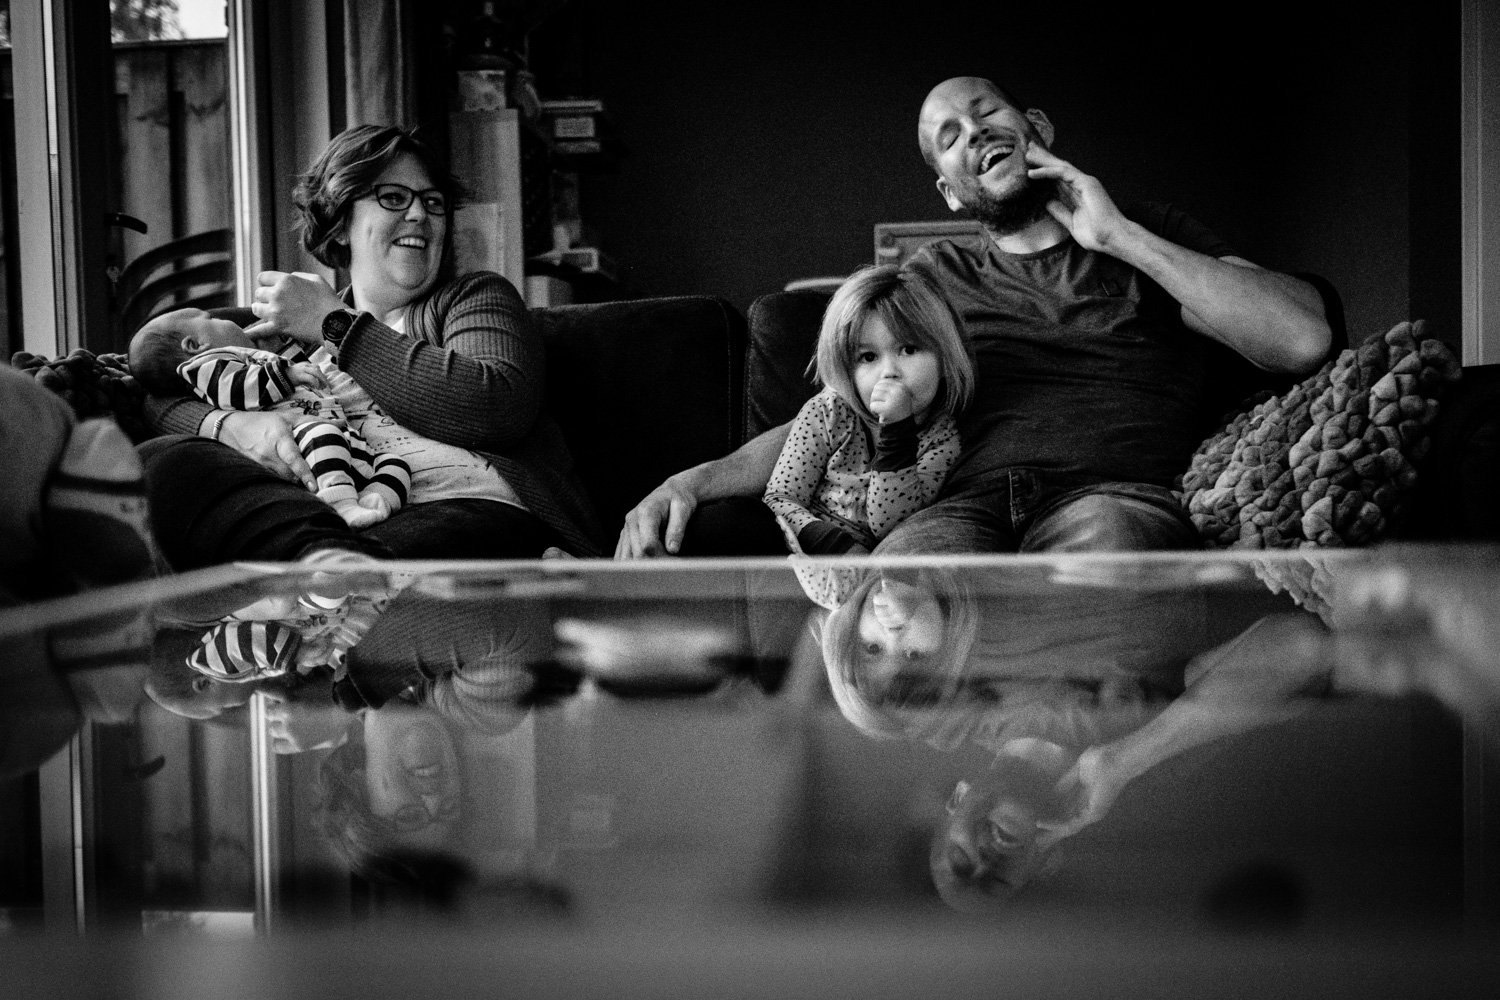 Day in the life / Familieverhaal gezinsfotografie